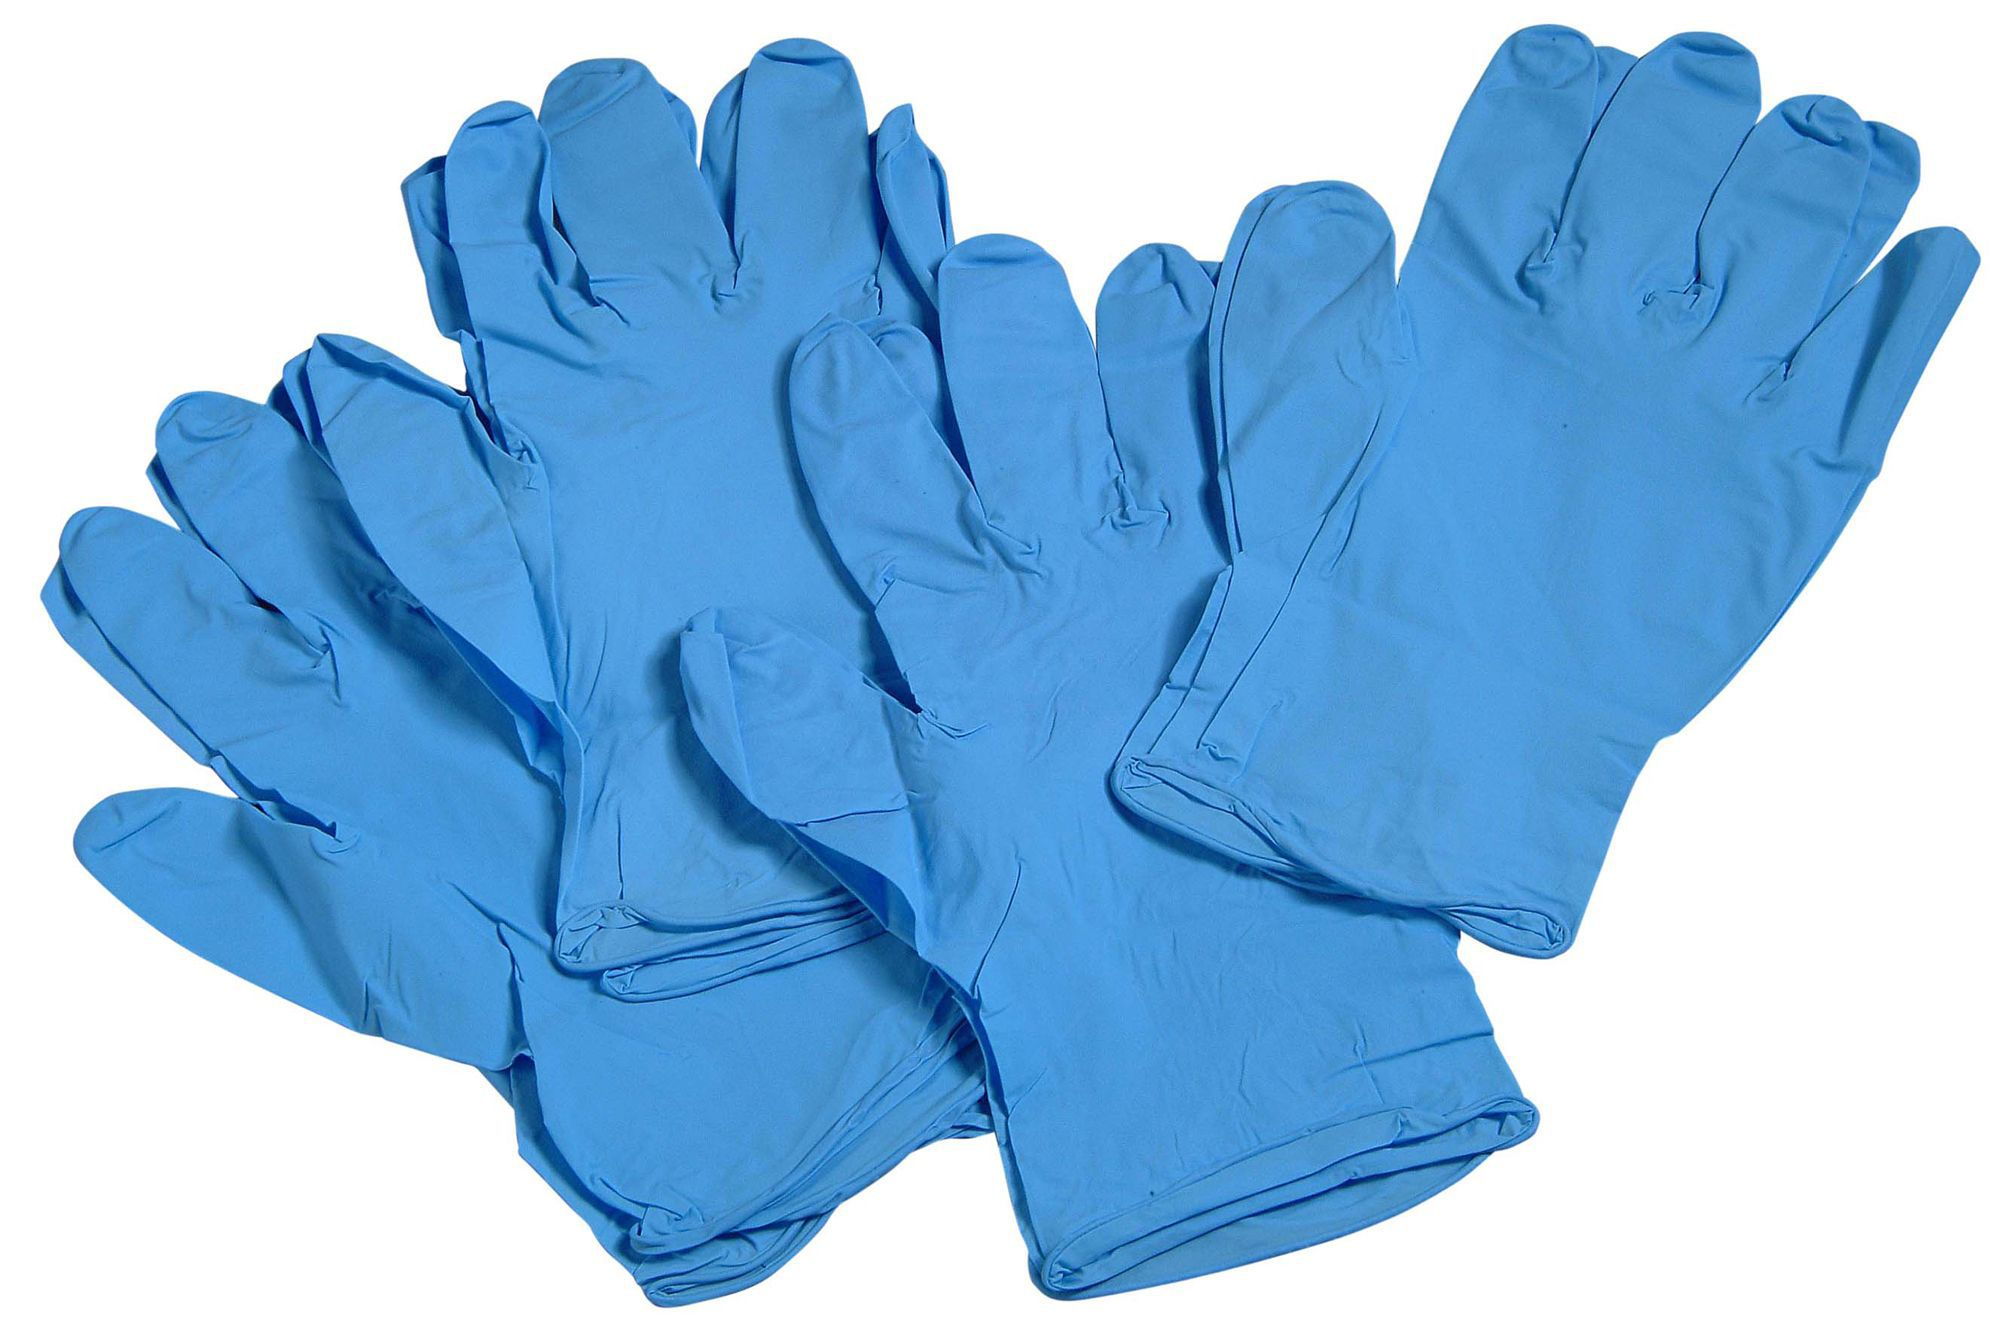 Harris Gloves, One Size, Pack Of 8